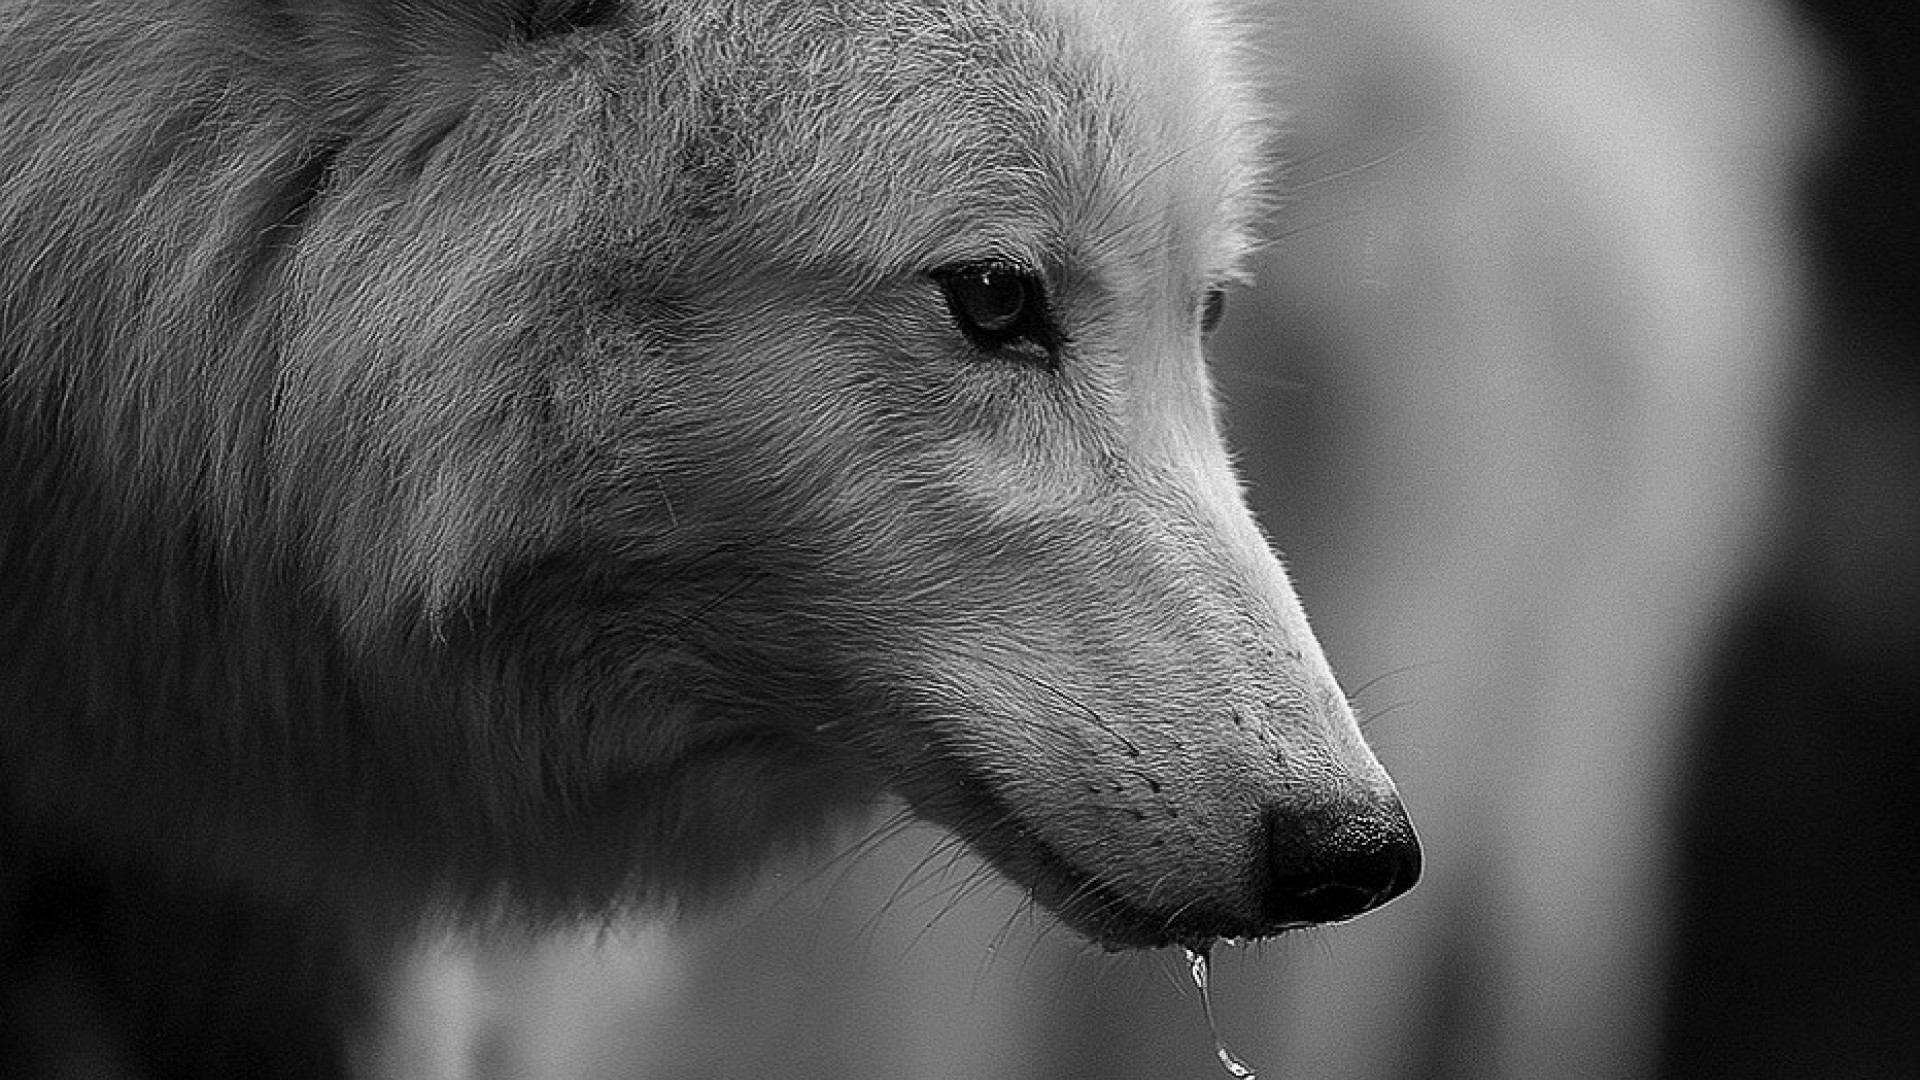 wallpaper-hd-dire-wolf-hd-cool-7-hd-wallpapers.jpeg